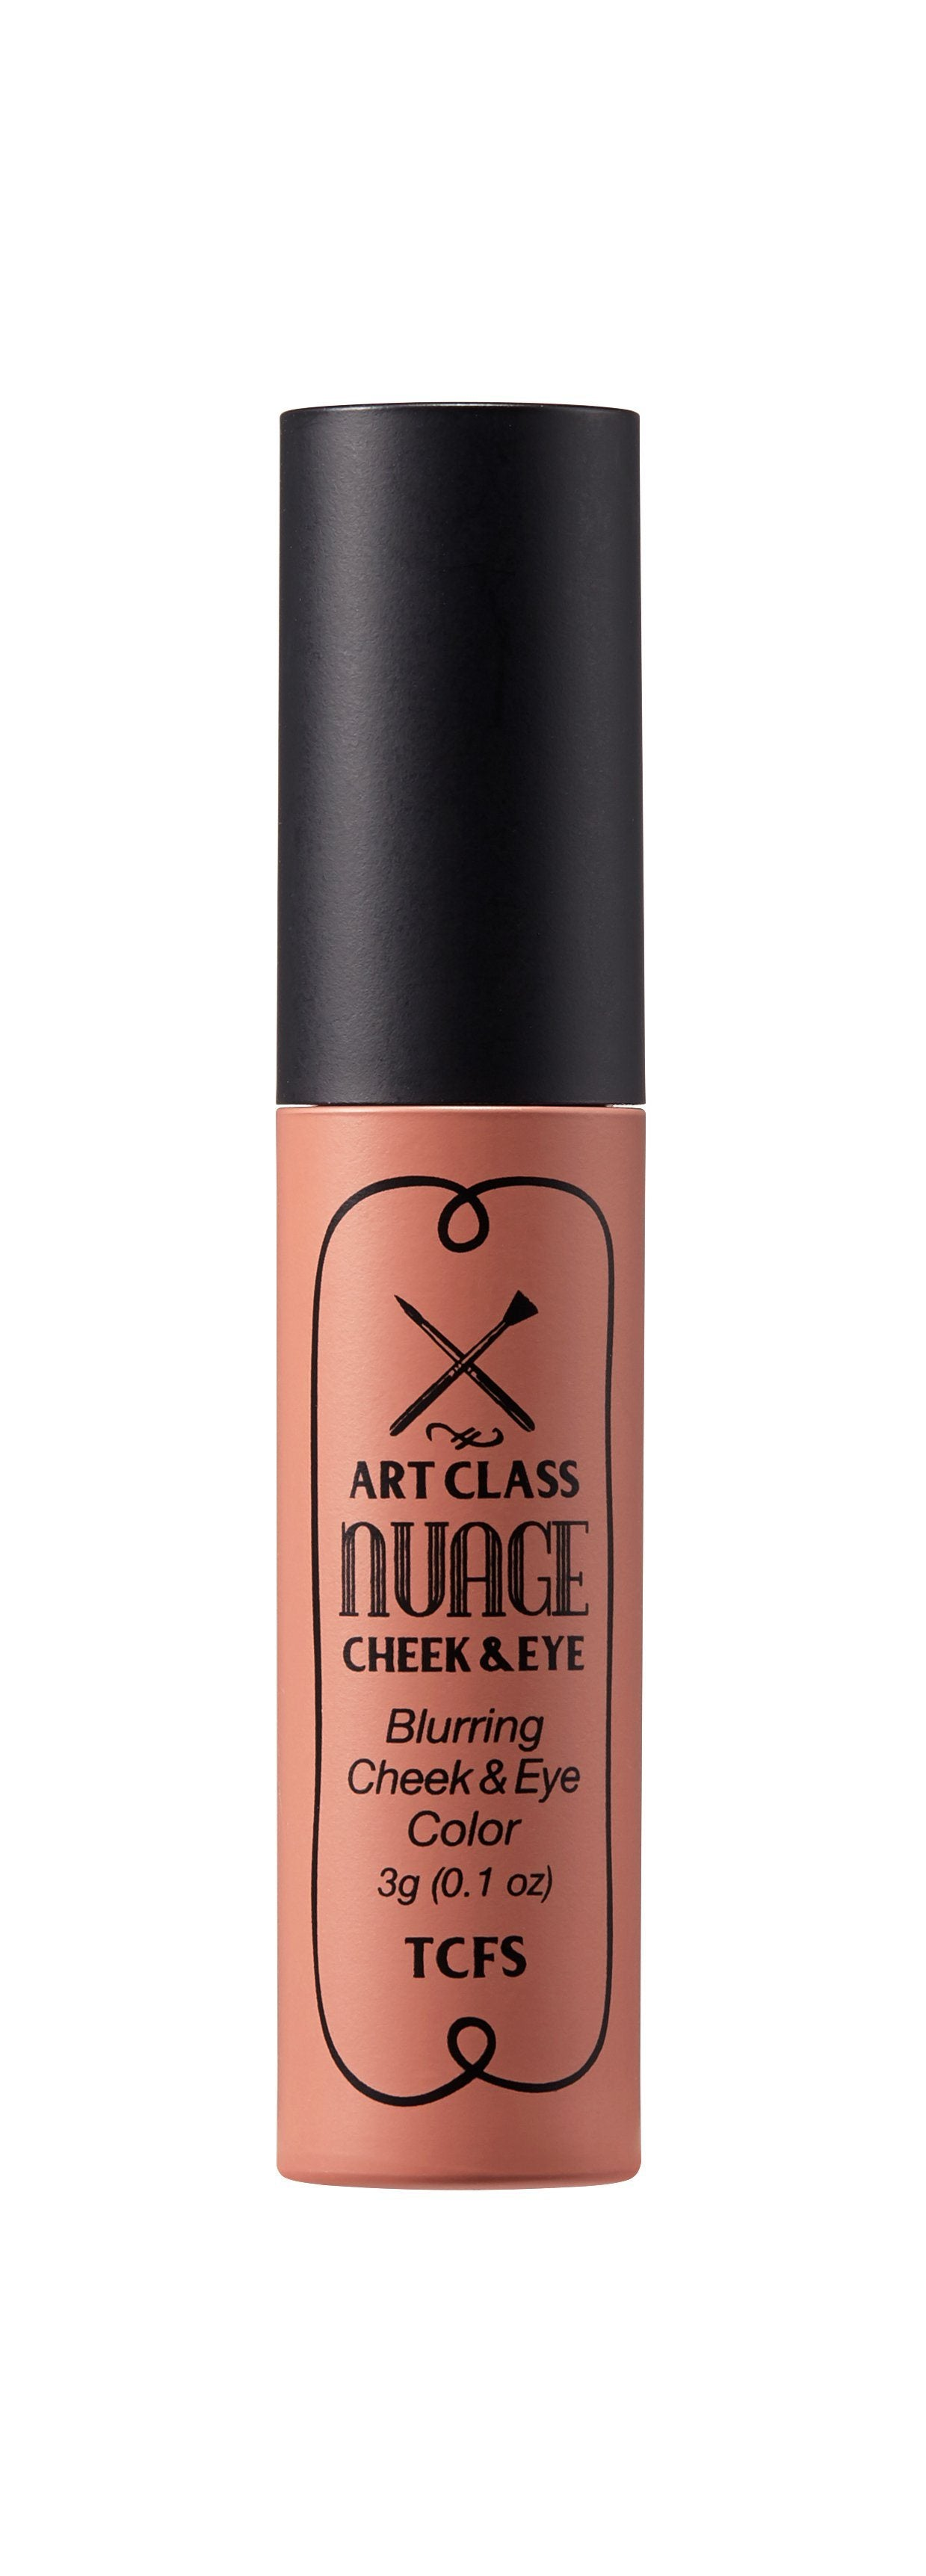 Health & Beauty > Personal Care > Cosmetics > Makeup > Face Makeup > Blushes & Bronzers - Artclass Nuage Cheek & Eye #4 Róż Do Policzków I Cień Do Powiek 2w1 20 G